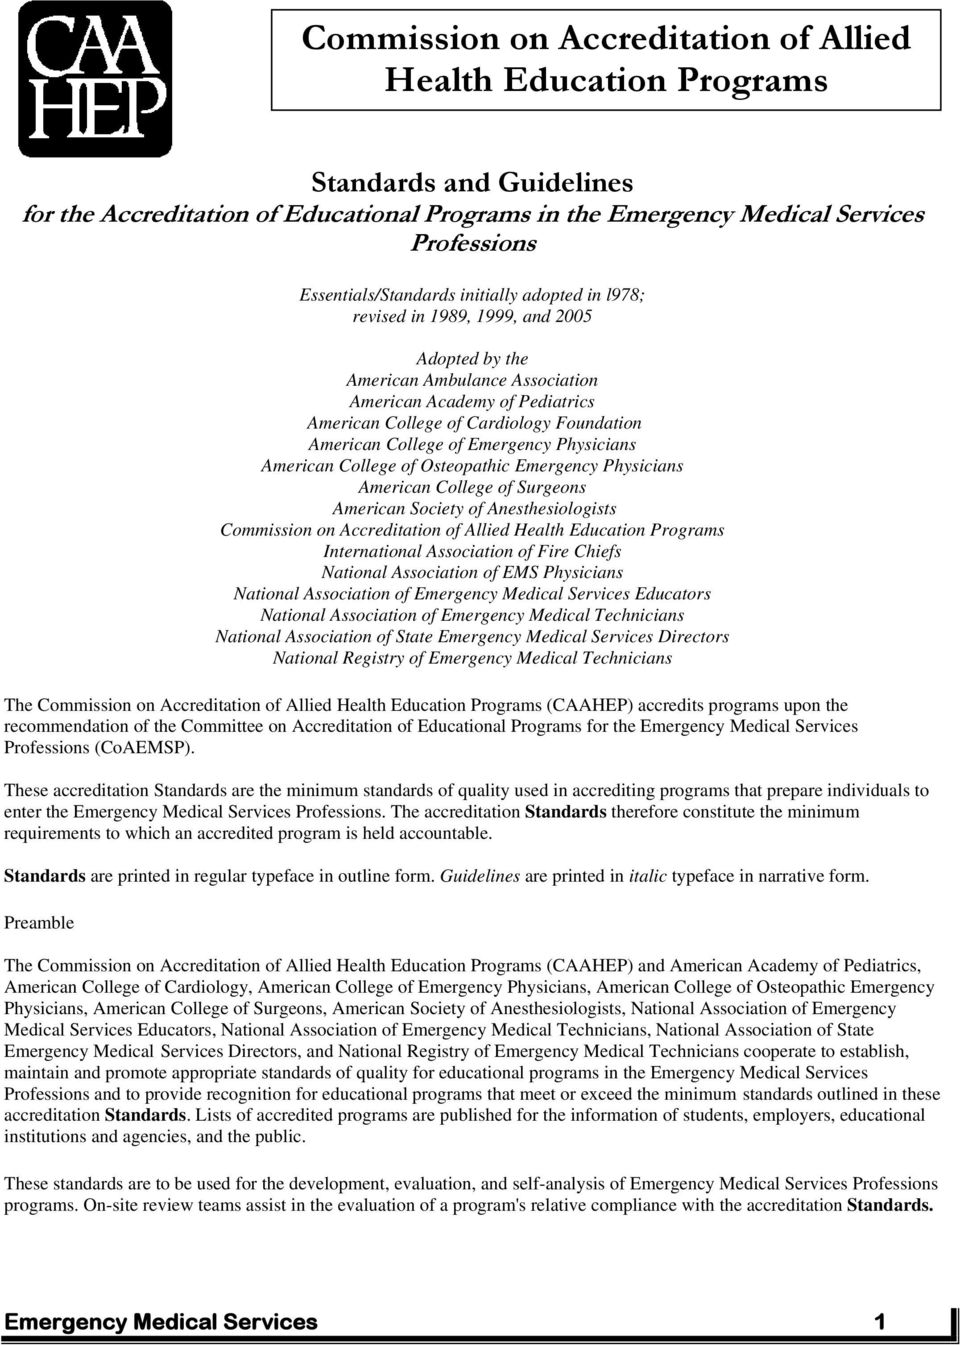 American College of Emergency Physicians American College of Osteopathic Emergency Physicians American College of Surgeons American Society of Anesthesiologists Commission on Accreditation of Allied